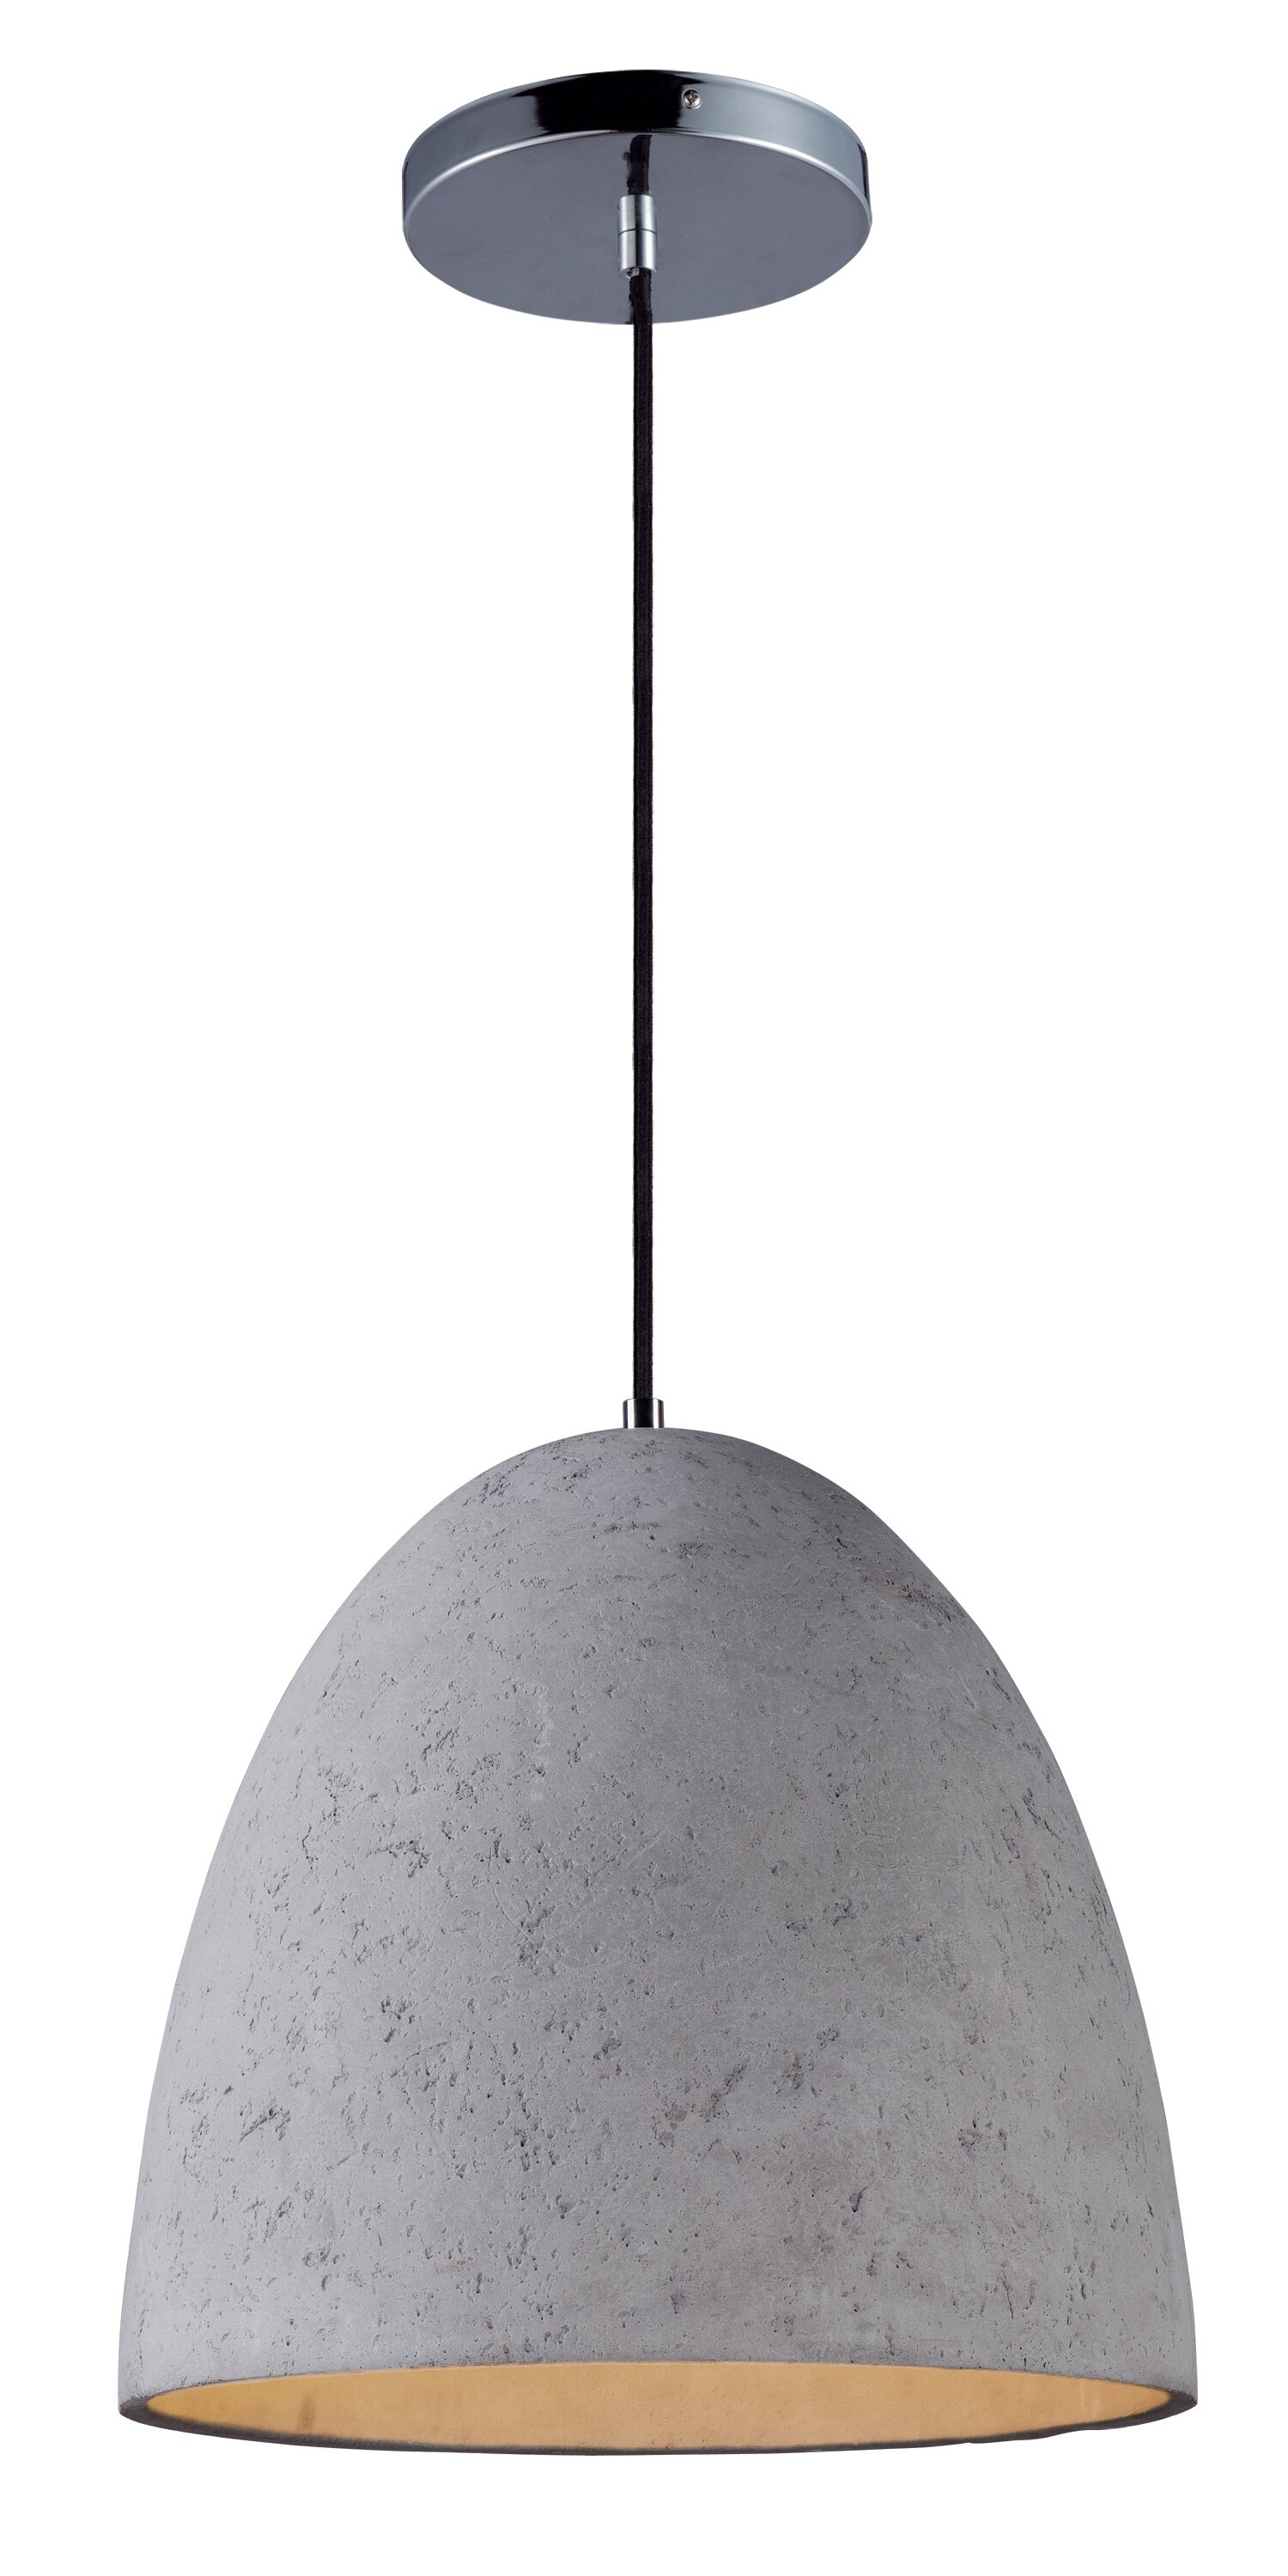 Giselle 1 Light Single Bell Pendant Reviews Allmodern